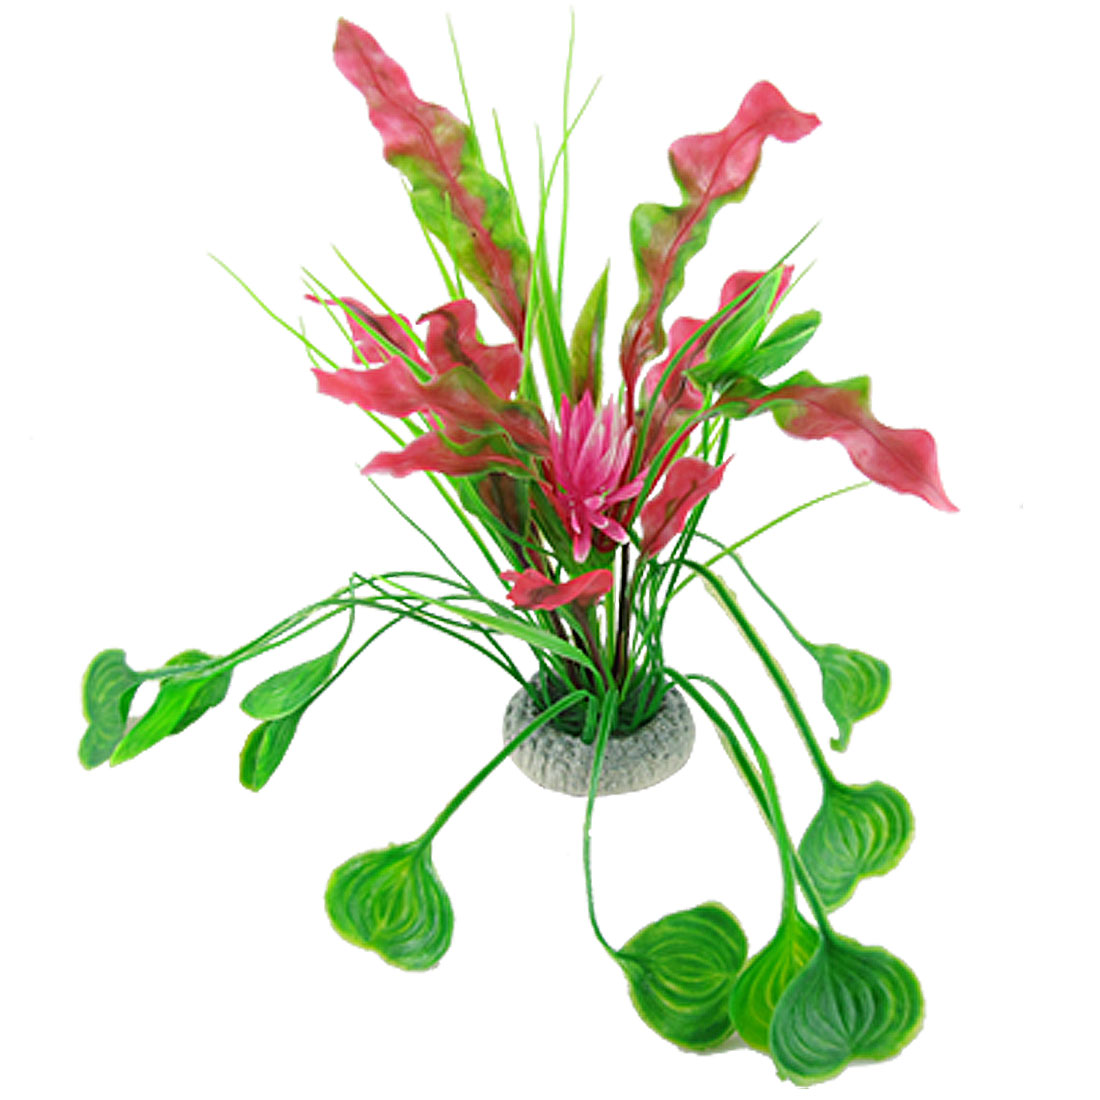 Fish Tank Plastic Pink Floral Accent Amaranth Green Leaf Plants Ornament